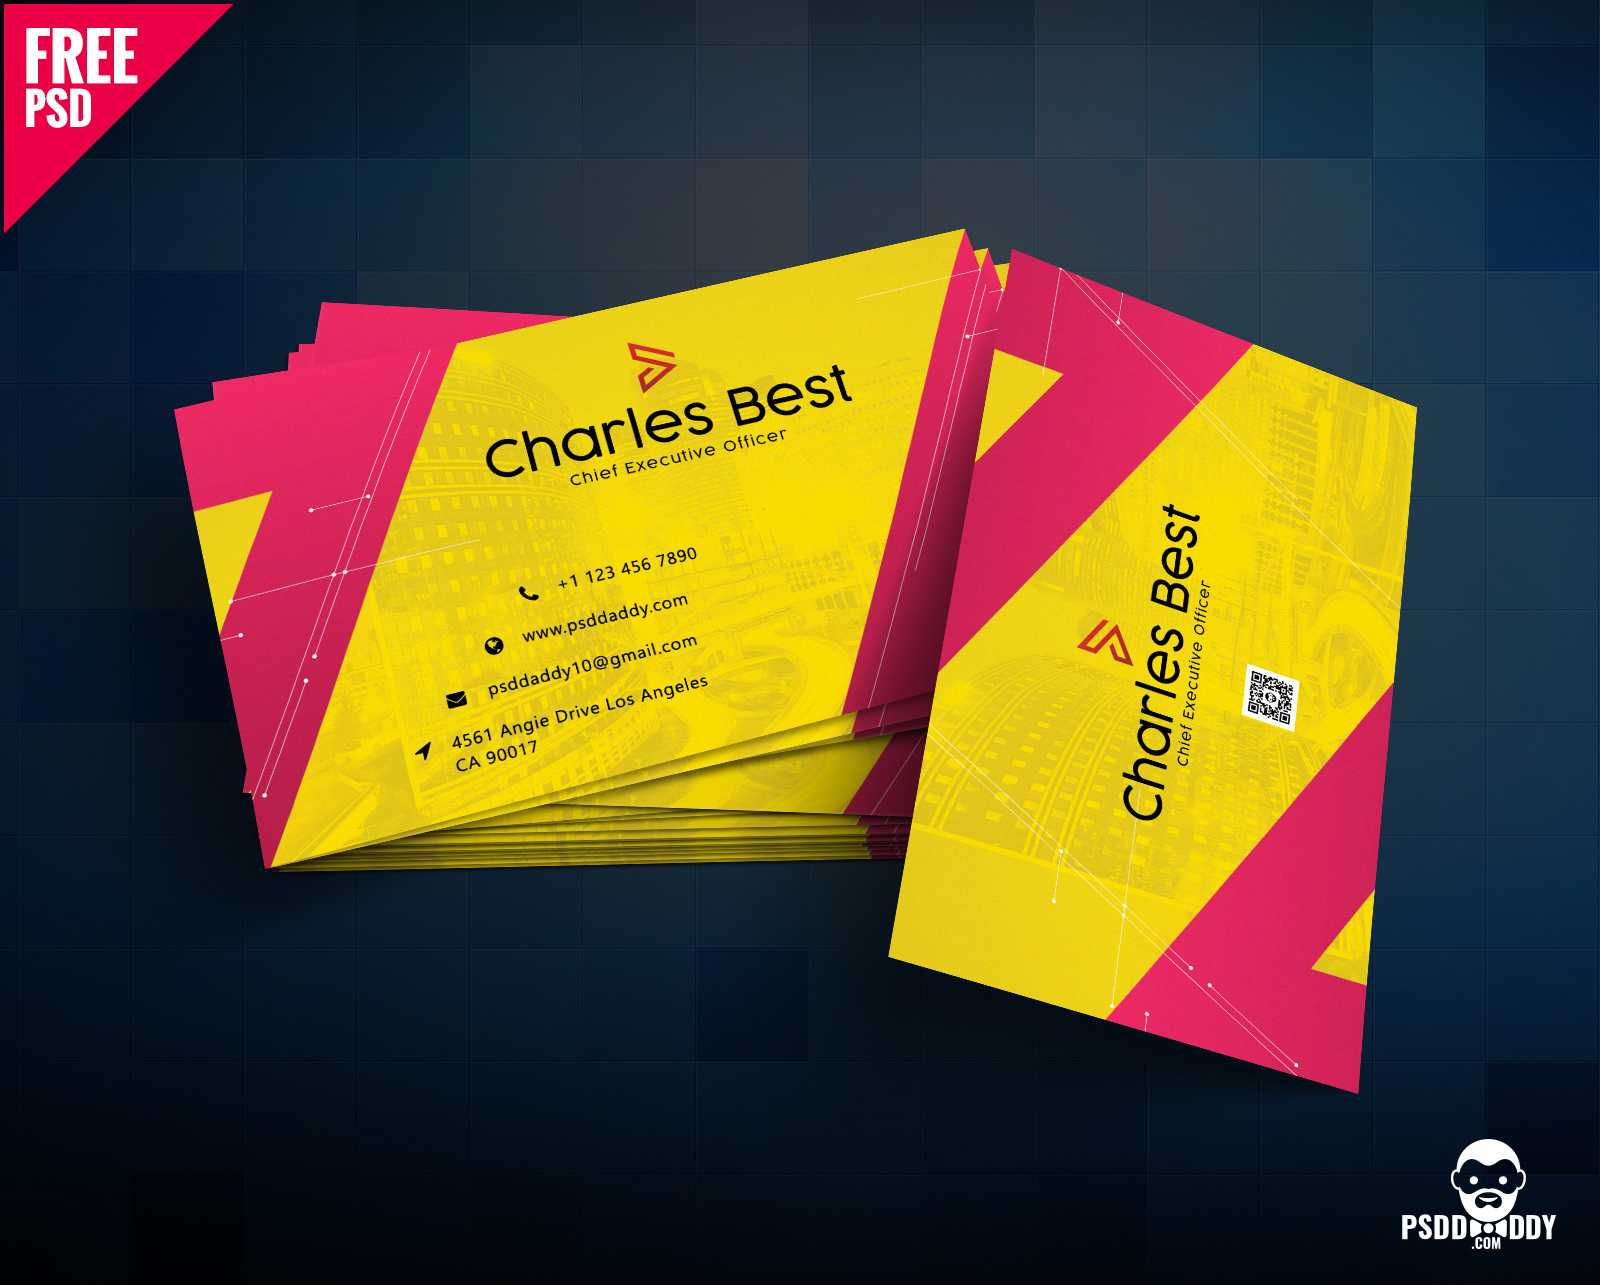 Download] Creative Business Card Free Psd   Psddaddy Throughout Business Card Size Psd Template